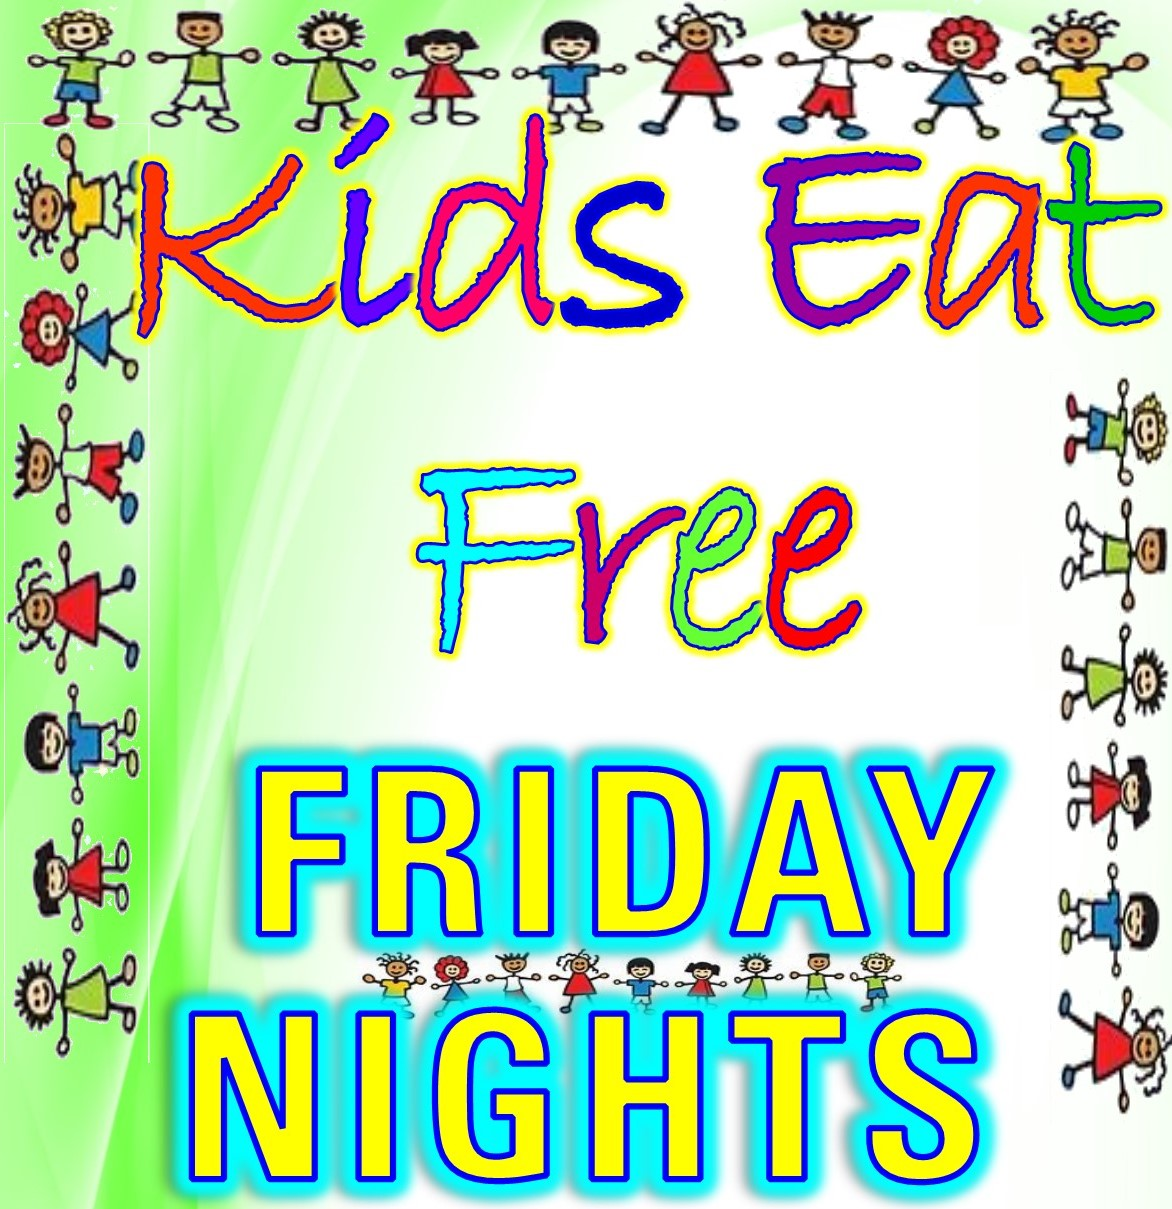 Where Kids Eat Free On Friday